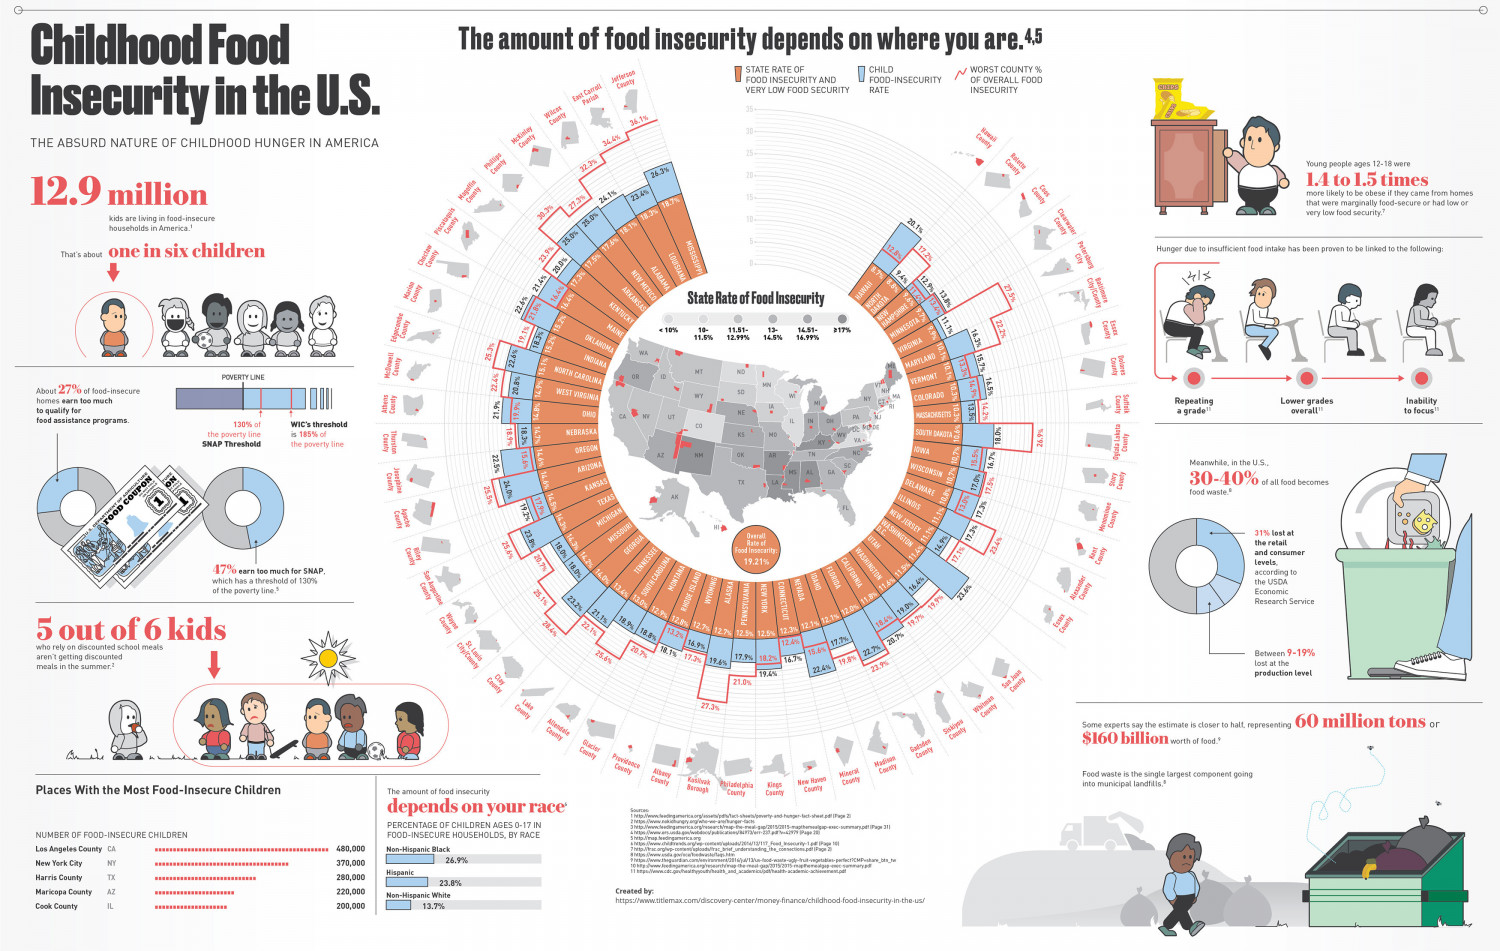 The Absurd Nature of Childhood Food Insecurity in the US Infographic